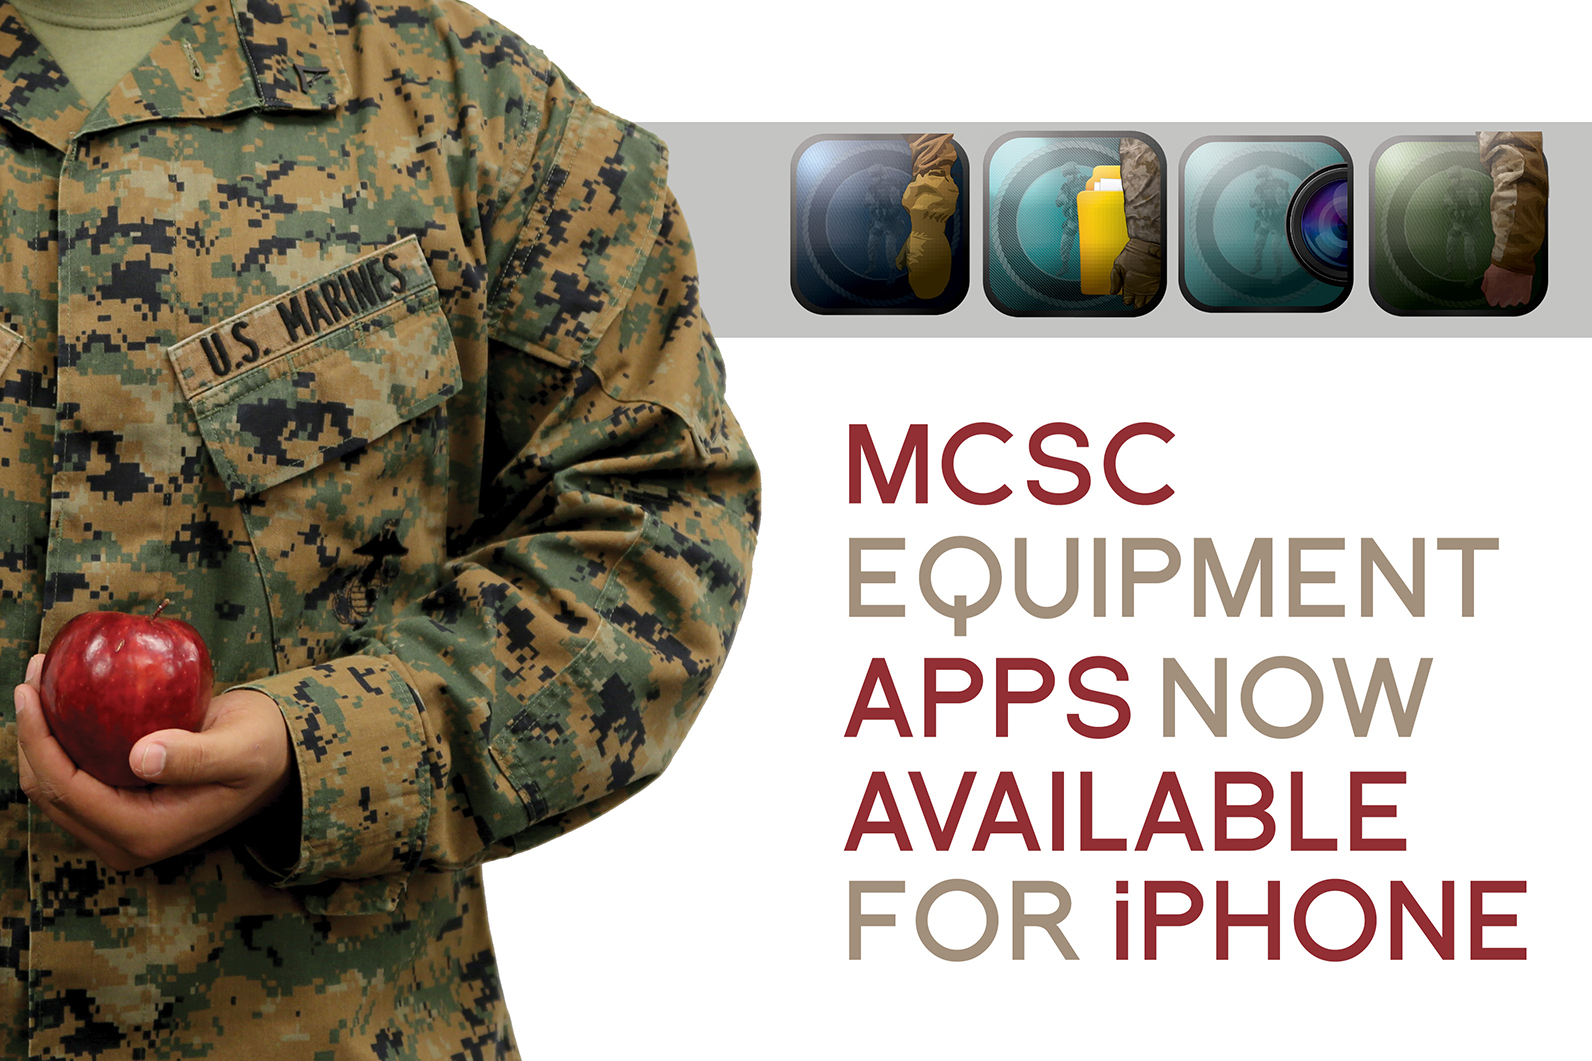 MCSC equipment apps now available for iPhone > Marine Corps